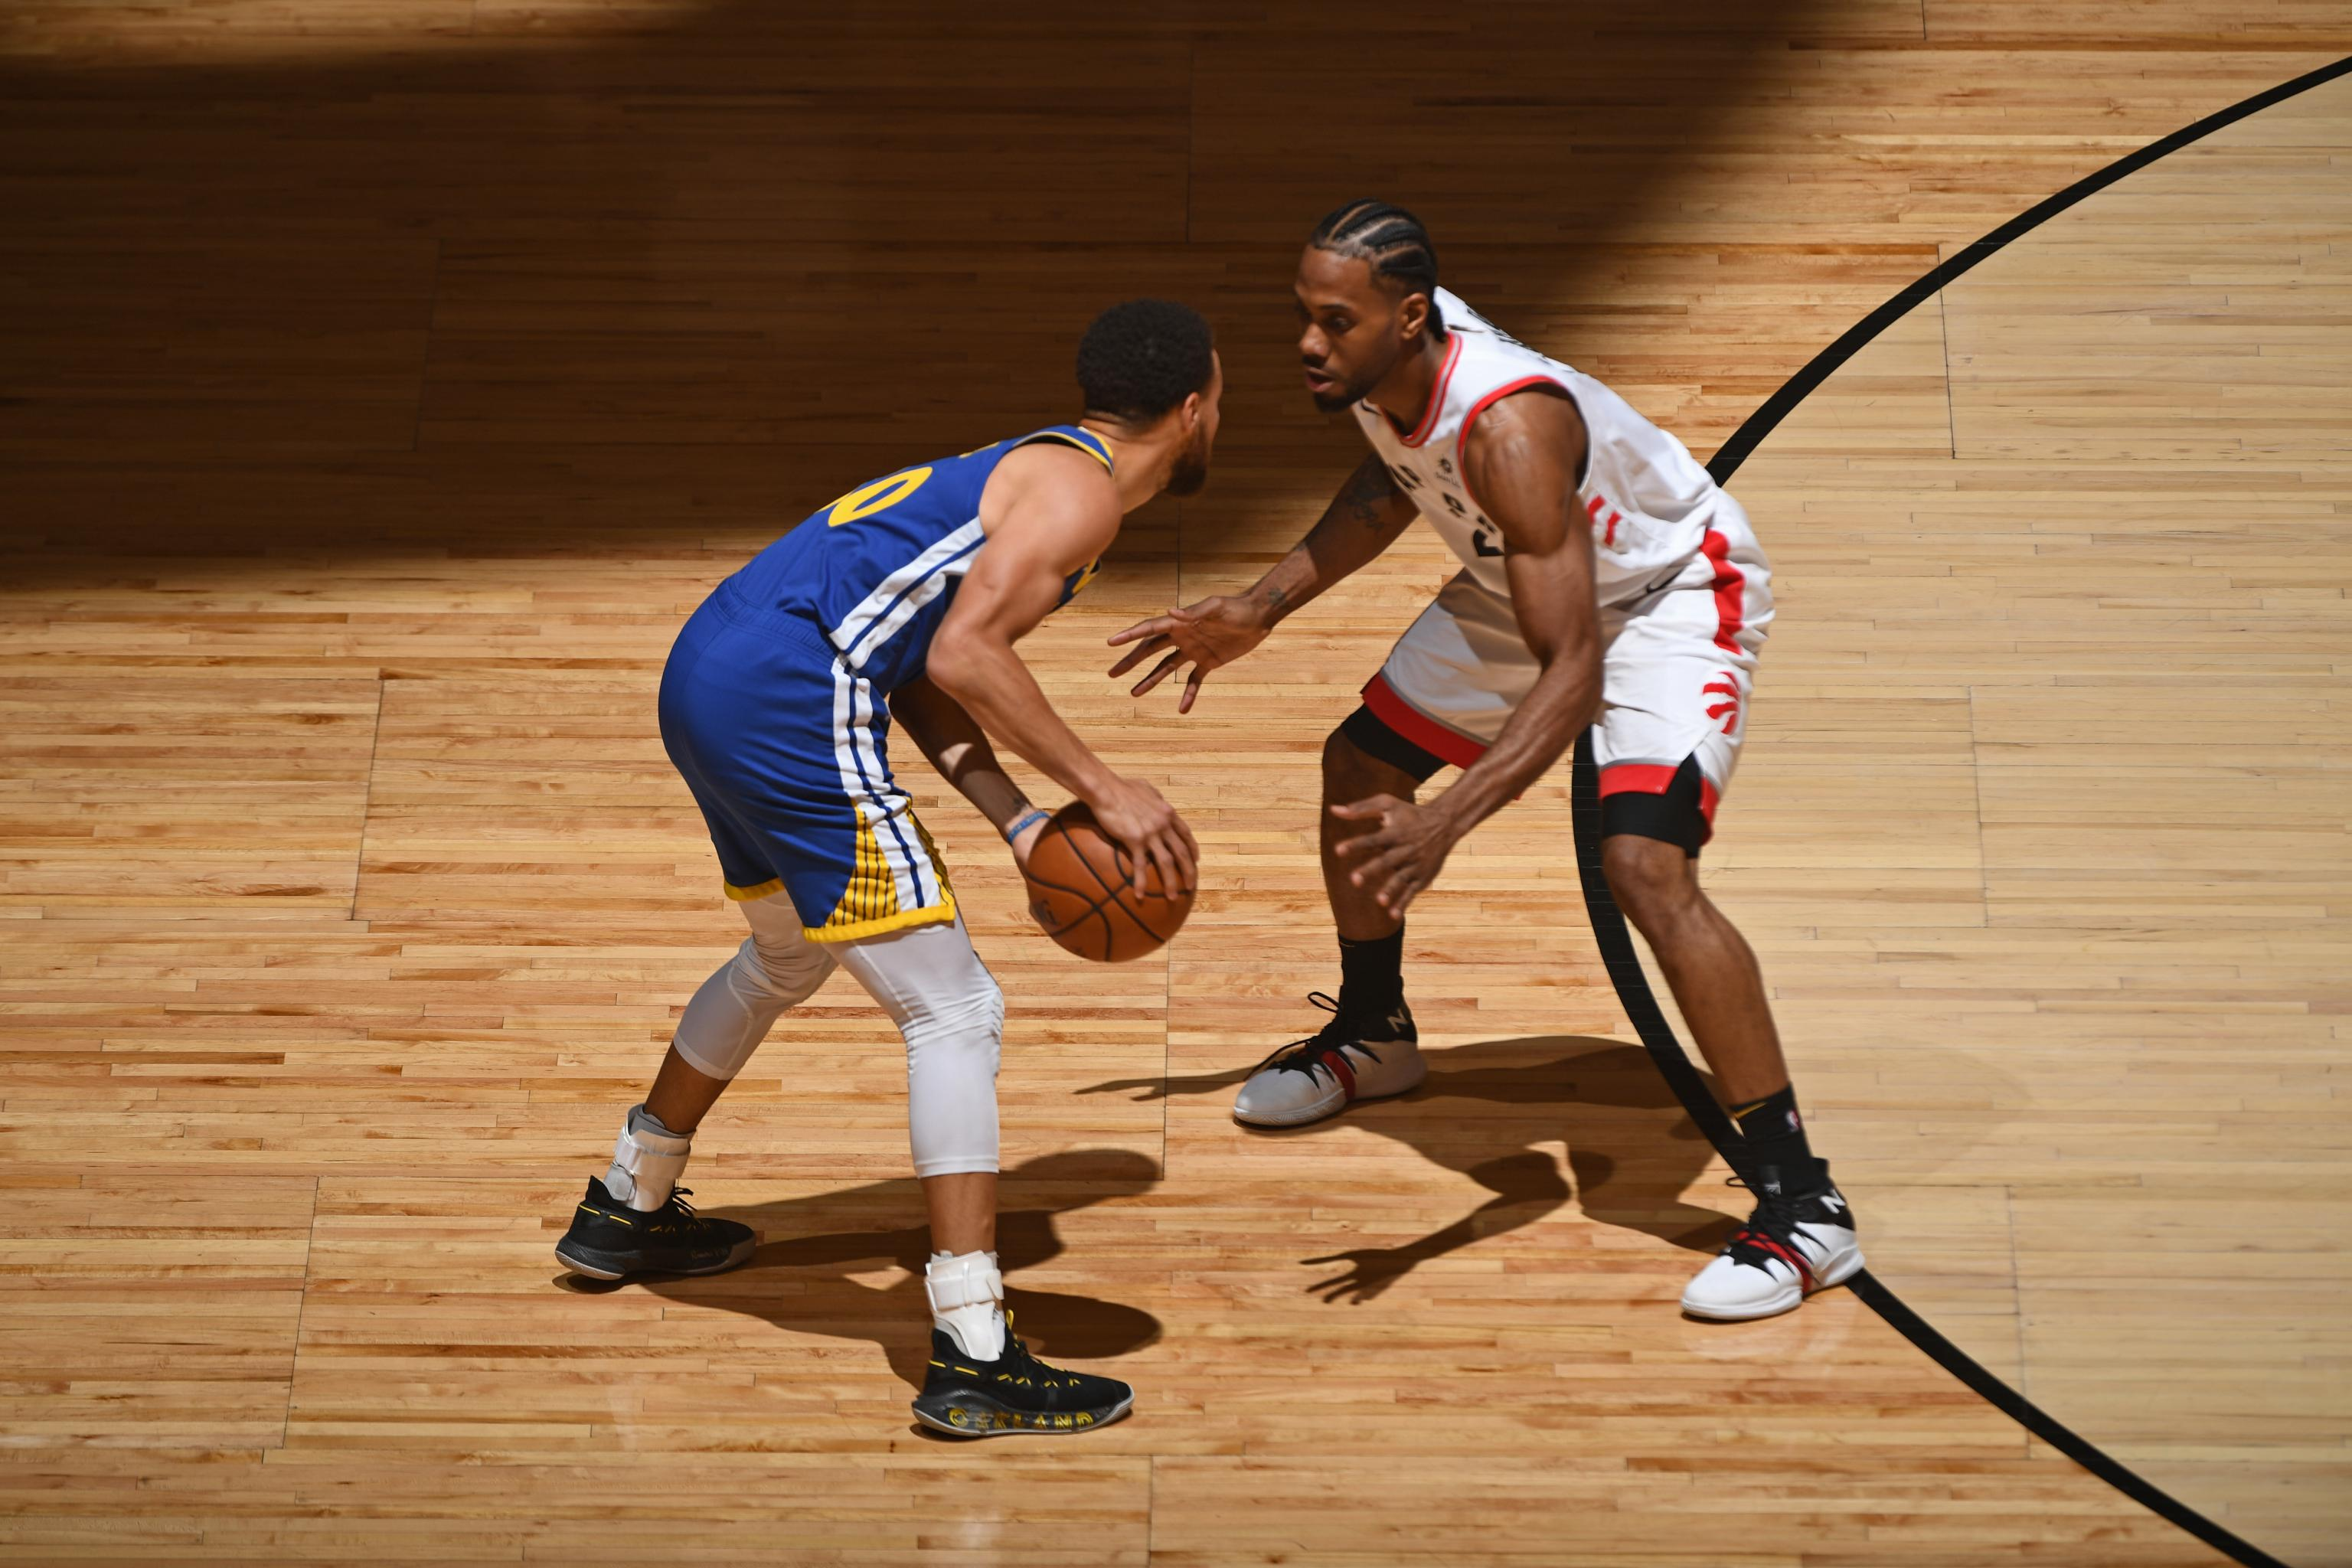 Raptors Vs Warriors Game 6 Tv Schedule Live Stream Guide For 2019 Nba Finals Bleacher Report Latest News Videos And Highlights